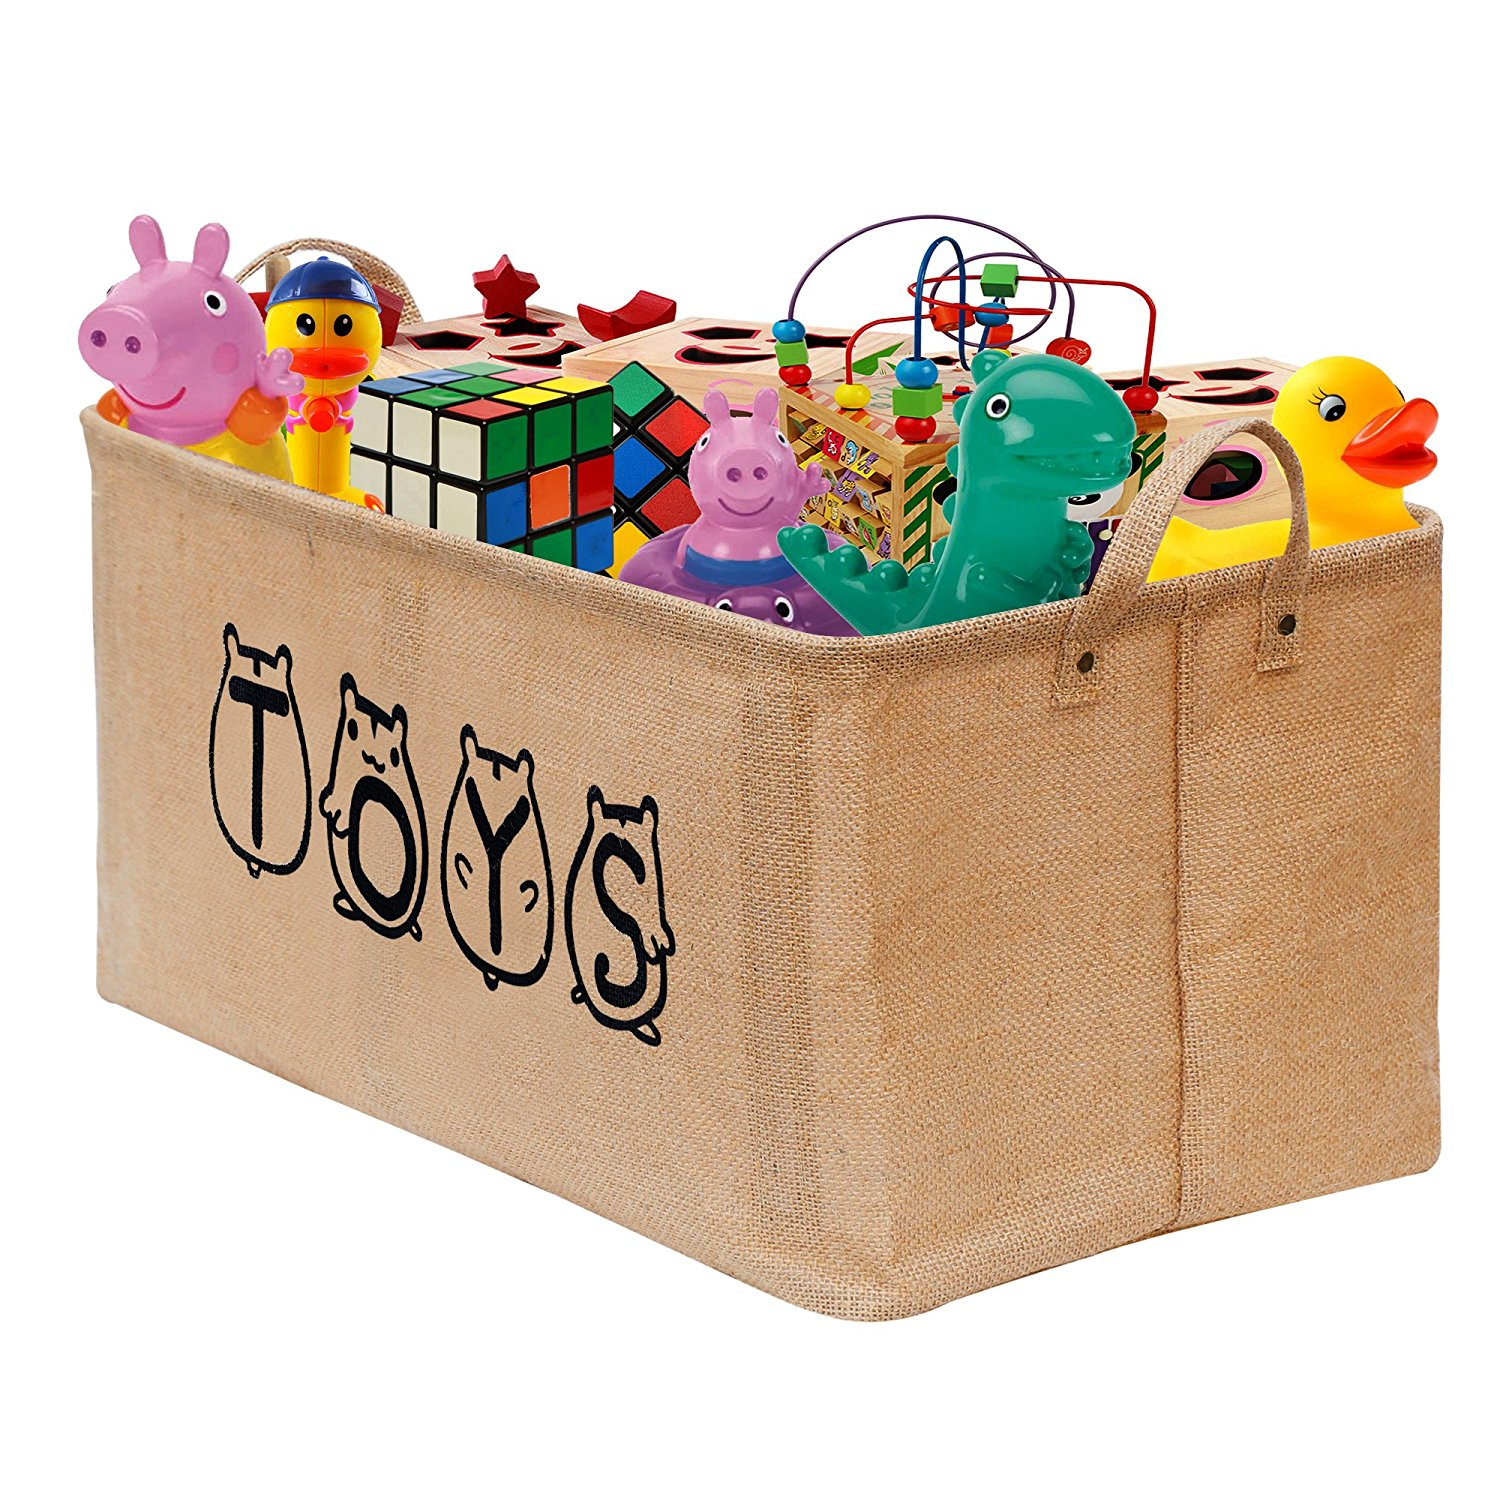 Gimars Storage Basket Collapsible Jute Toy Bin Bag Box Organizer with Handle - Sturdy Lightweight, Ecofirendly - for Baby Kids Nursey Pet Toys, Baby Clothing,Children Books,Gift Baskets, XL 20""